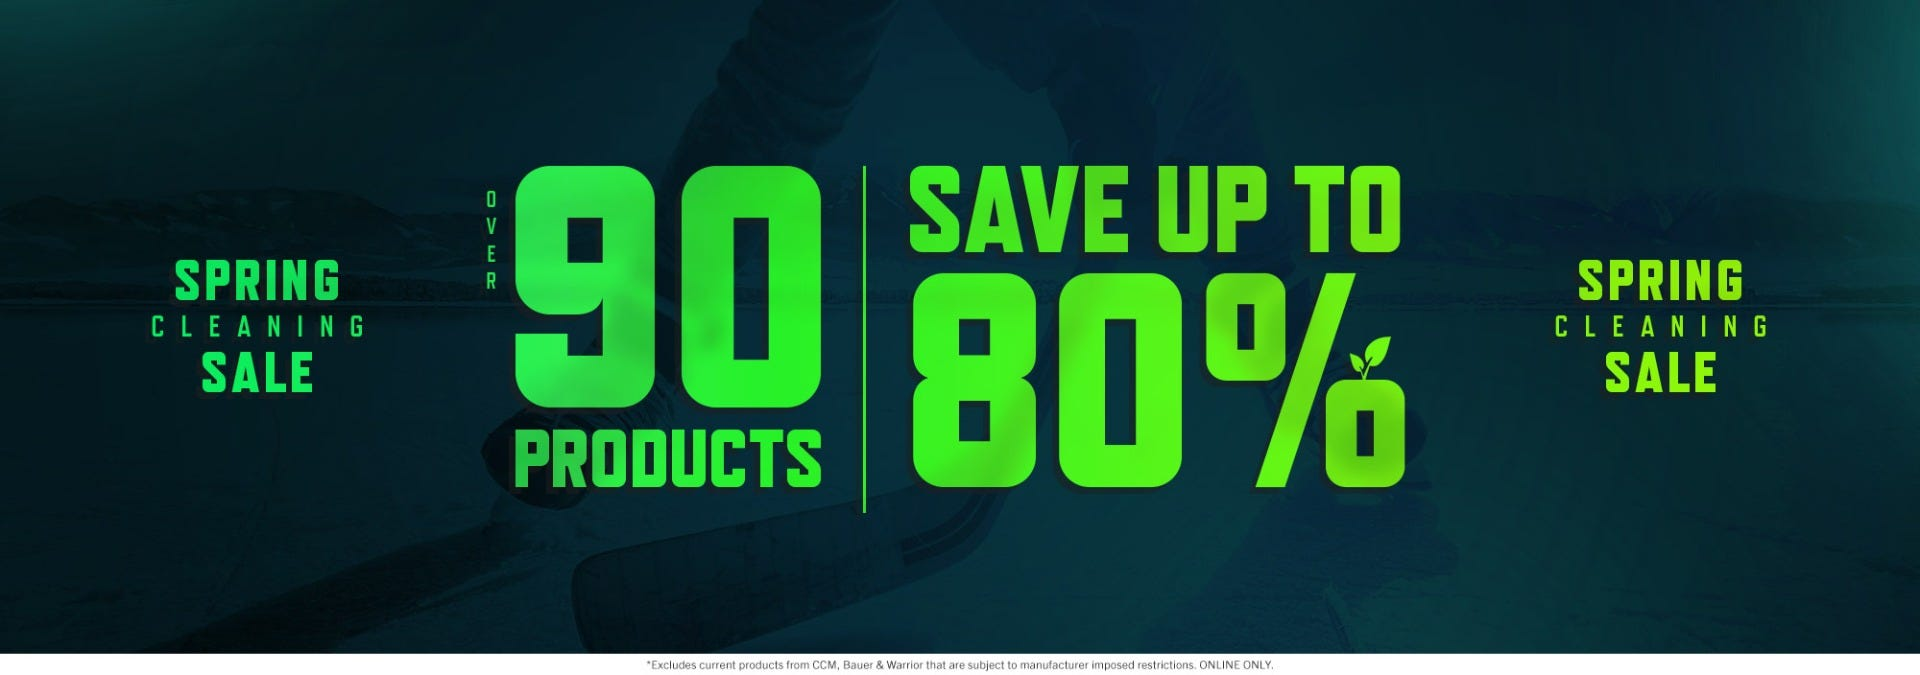 Spring Cleaning Sale: Save up to 80% on over 90 items